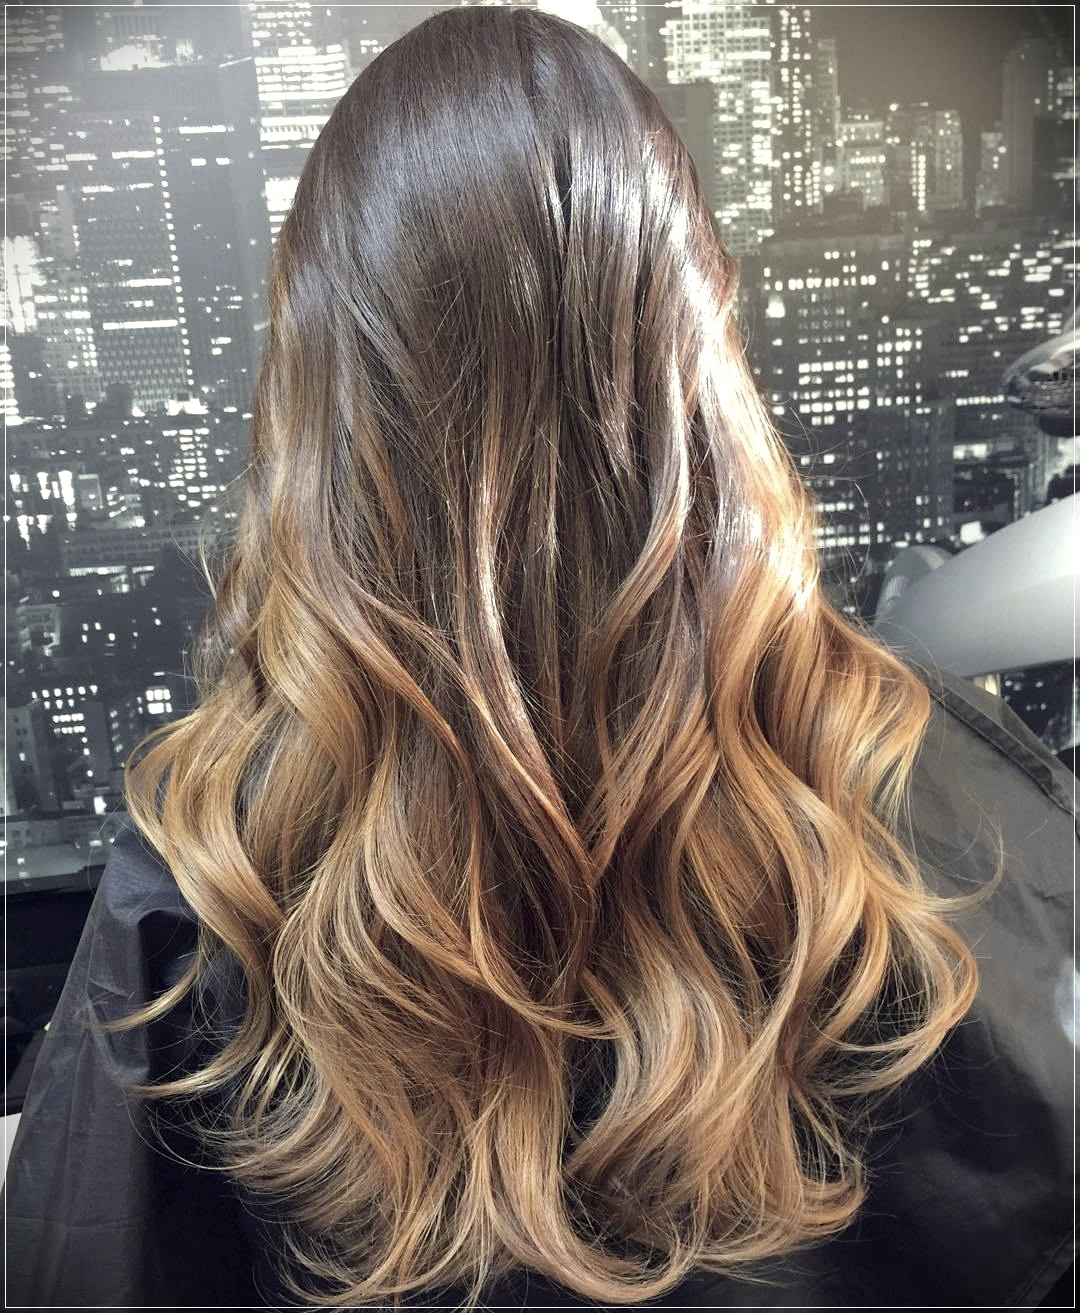 ombre hair color 2 - How to do ombre hair color to look attractive and sexy